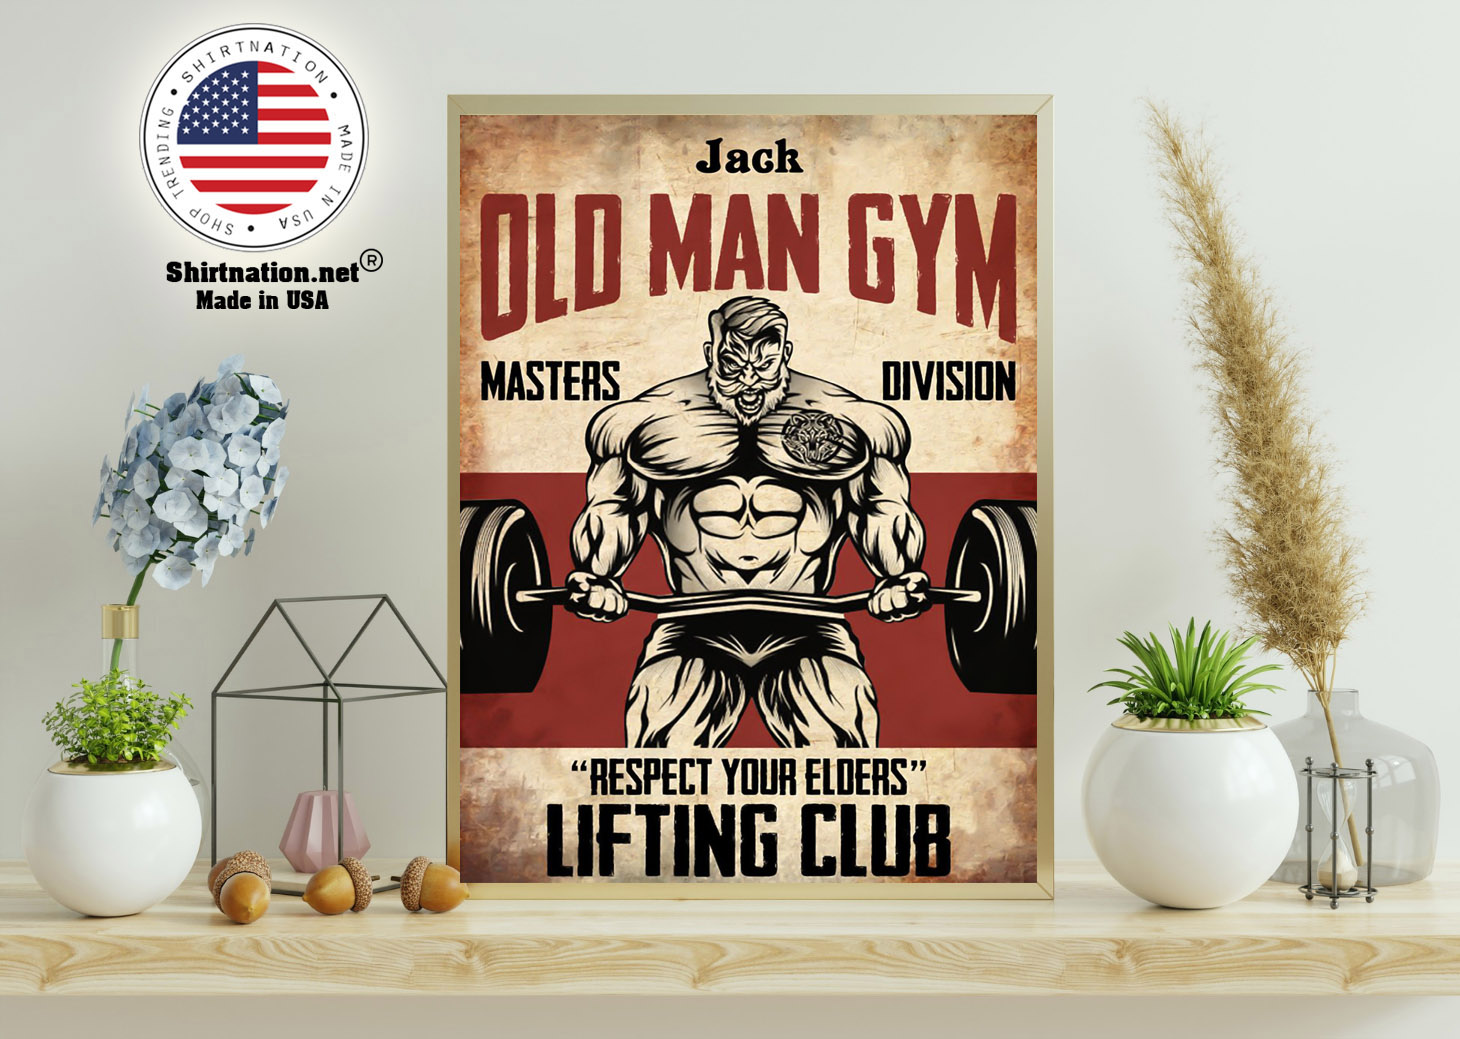 Old man gym masters division respect your elders lifting club poster 11